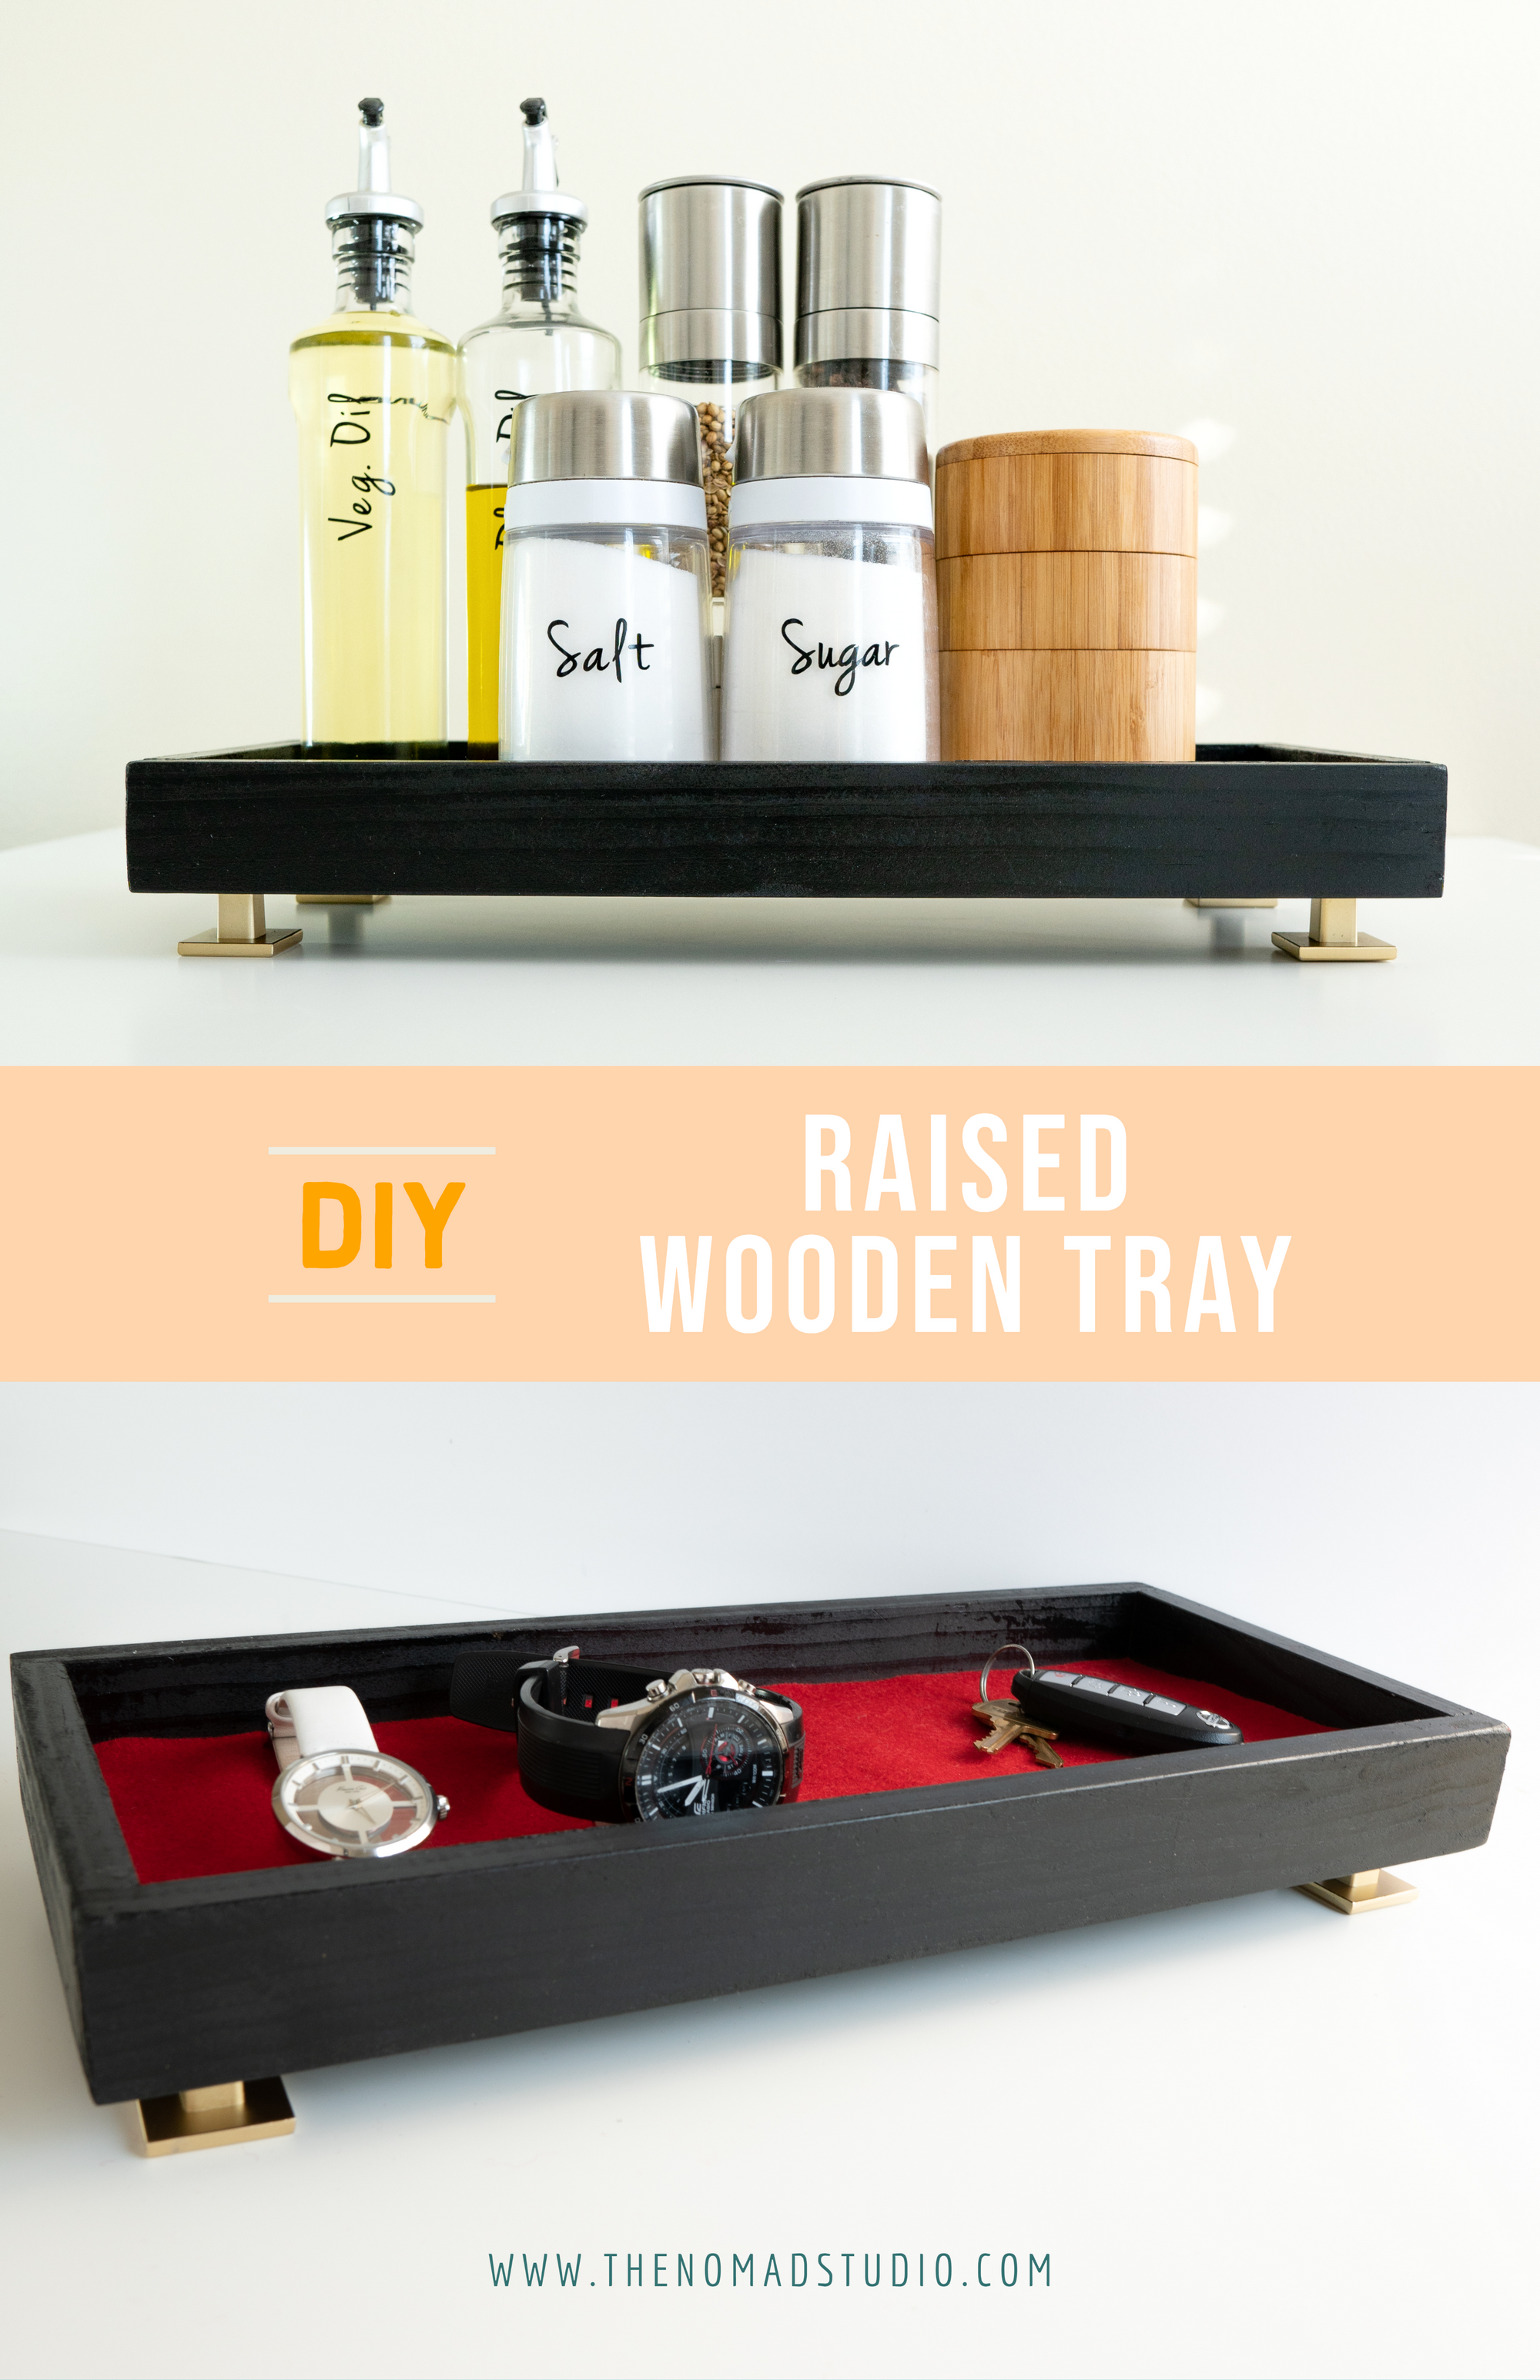 DIY Raised Wooden Tray